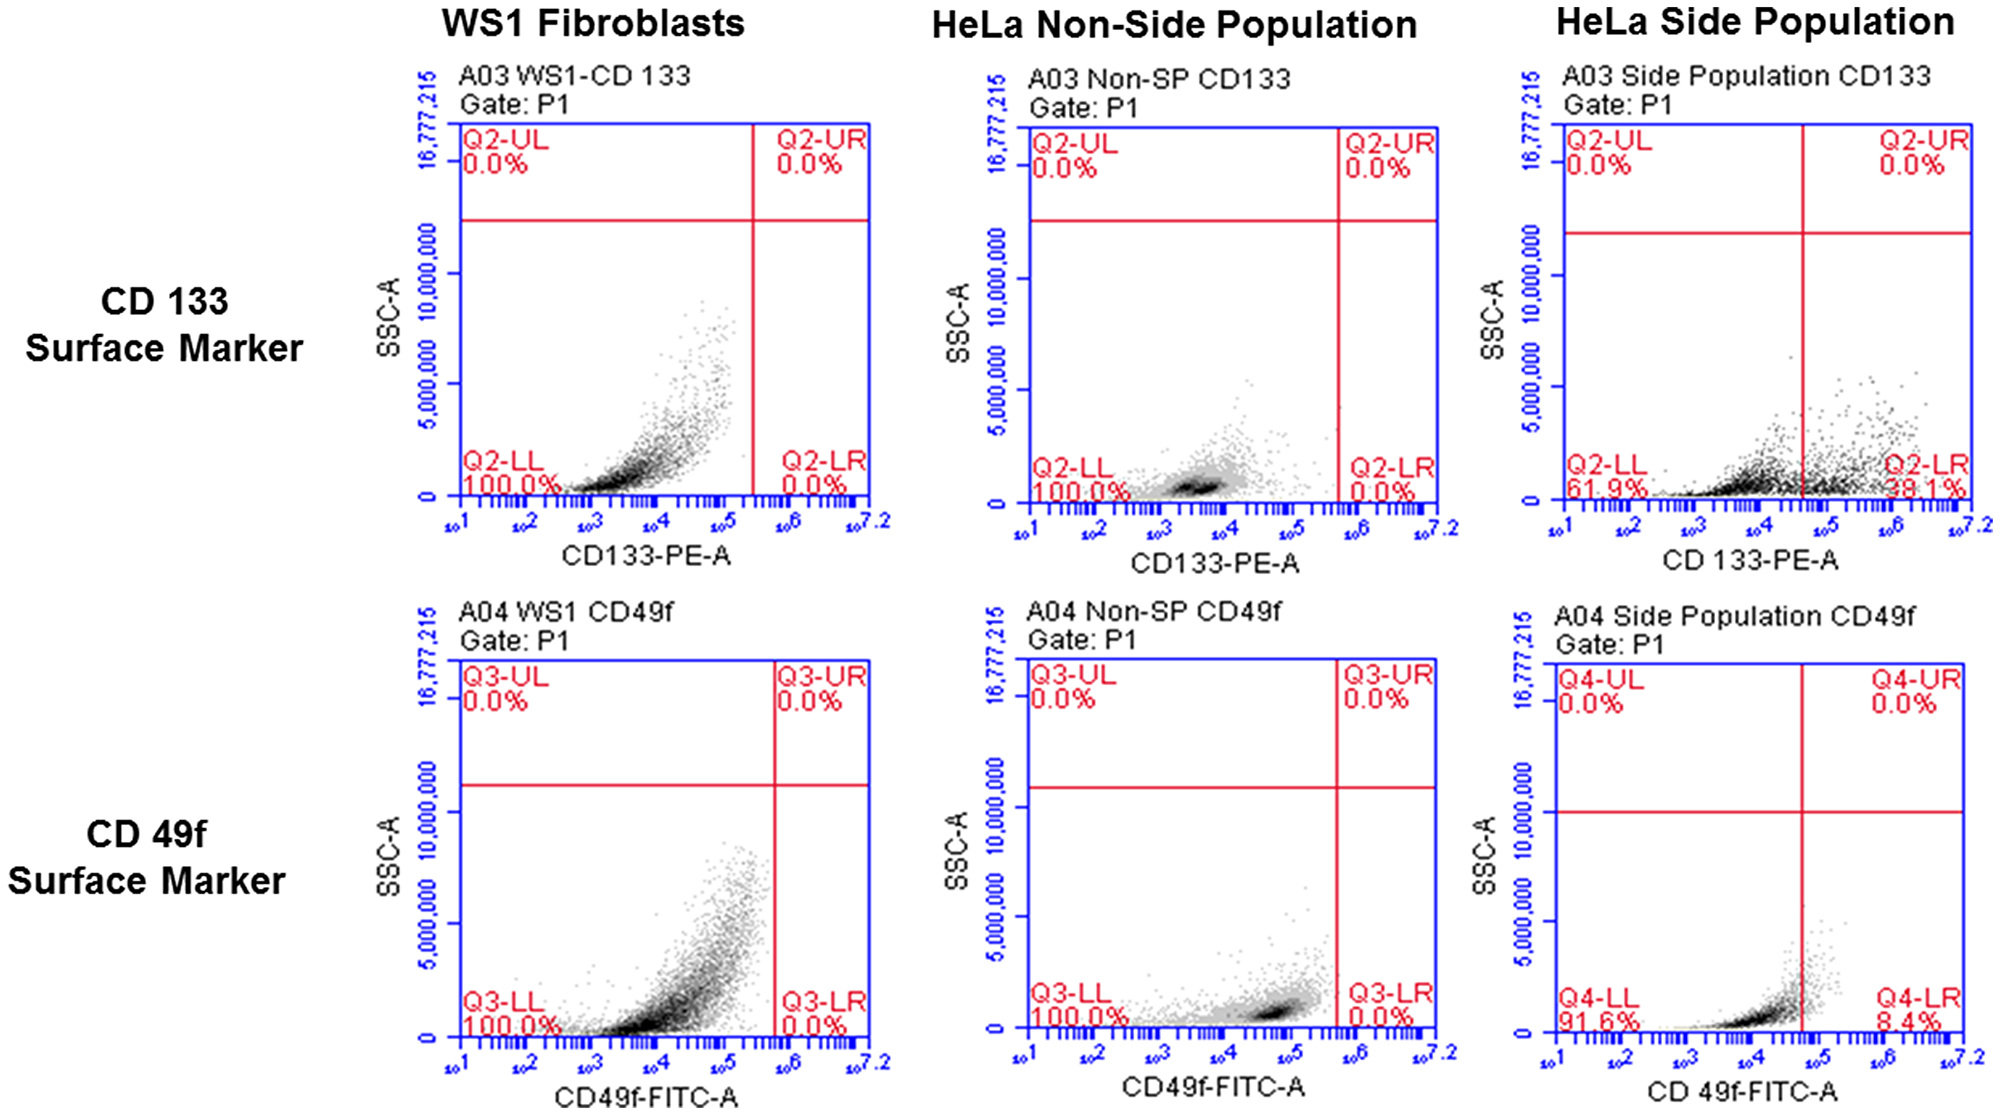 Flow cytometric analysis of cervical side population cells showing surface markers with 38.1% positive for CD133 and 8.4% positive of CD49f. The non-side population as well as the negative control, WS1 fibroblast were negative for both markers.